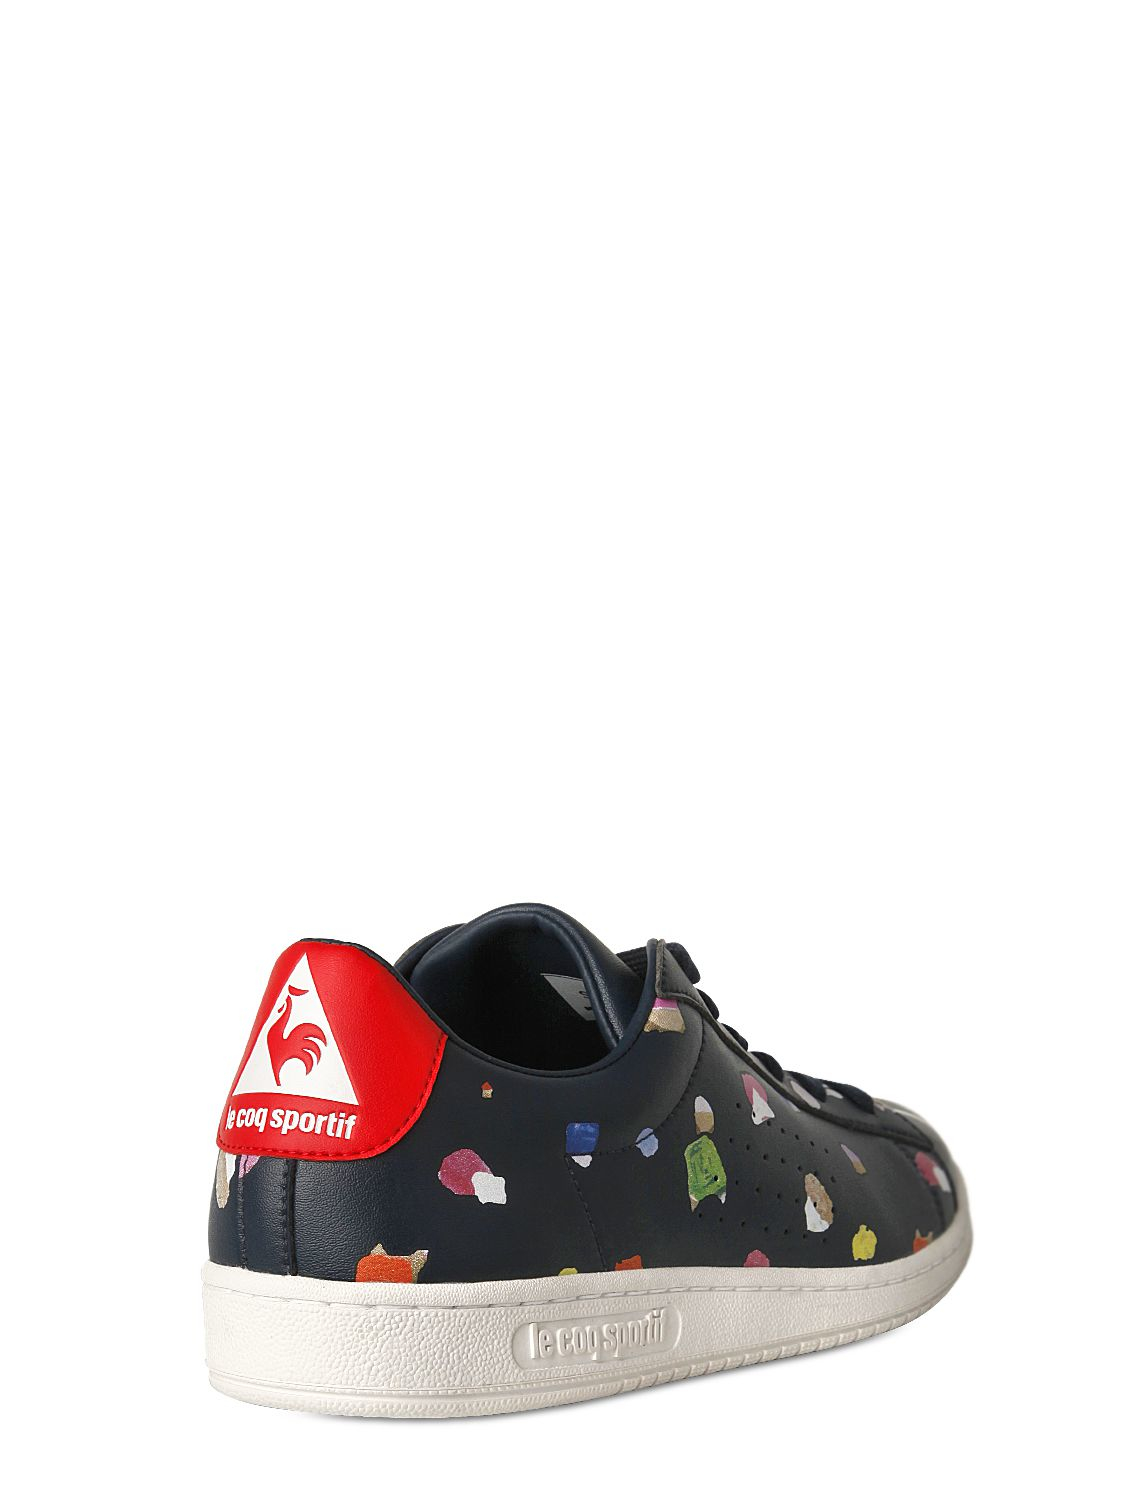 67442258a5b0 Lyst - Tsumori Chisato Le Coq Sportif Printed Vinyl Sneakers in Blue for Men